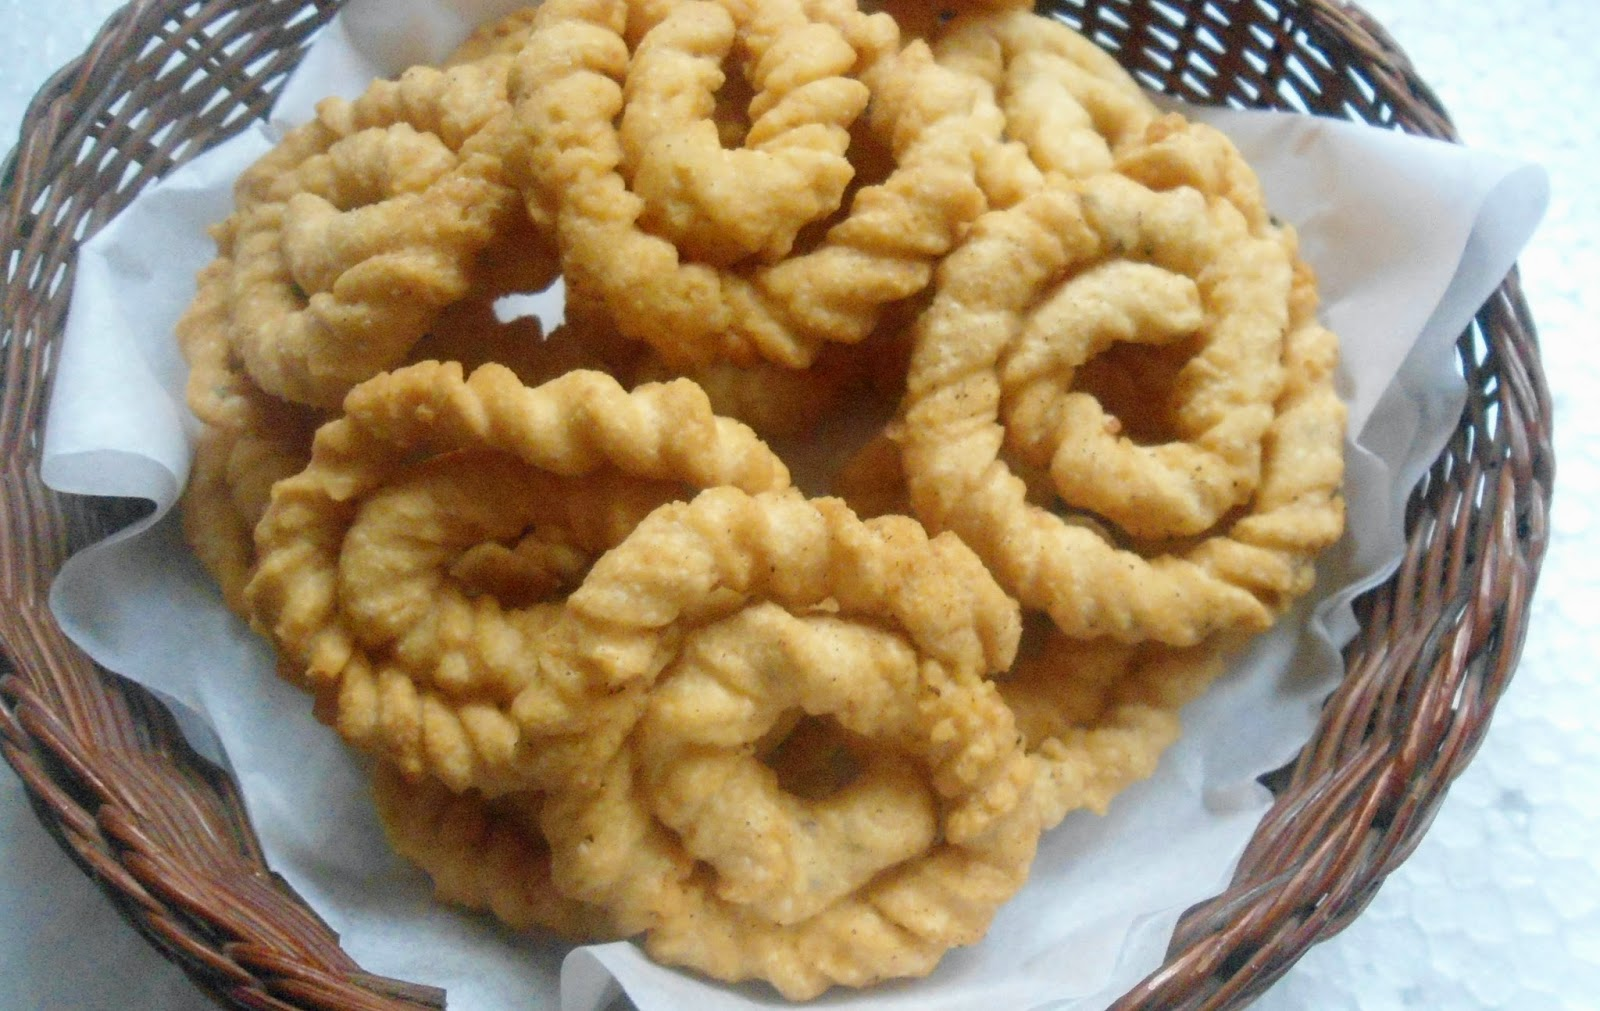 Kai (Suthu) Murukku | How to make suthu murukku ( with a small video)